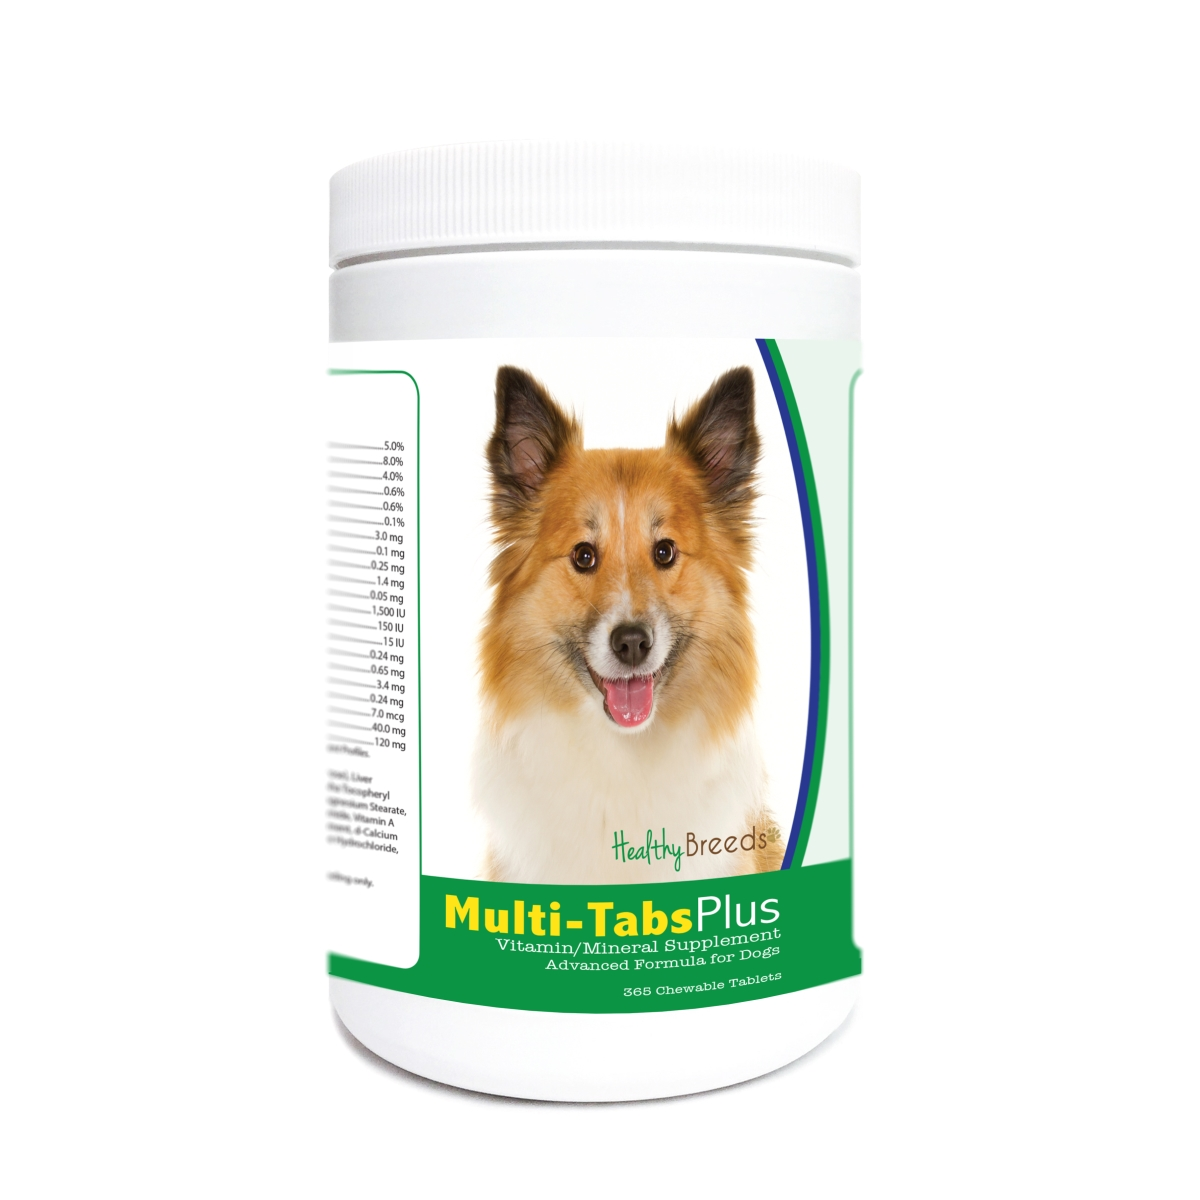 Healthy Breeds 840235172239 Icelandic Sheepdog Multi-Tabs Plus Chewable Tablets - 365 Count